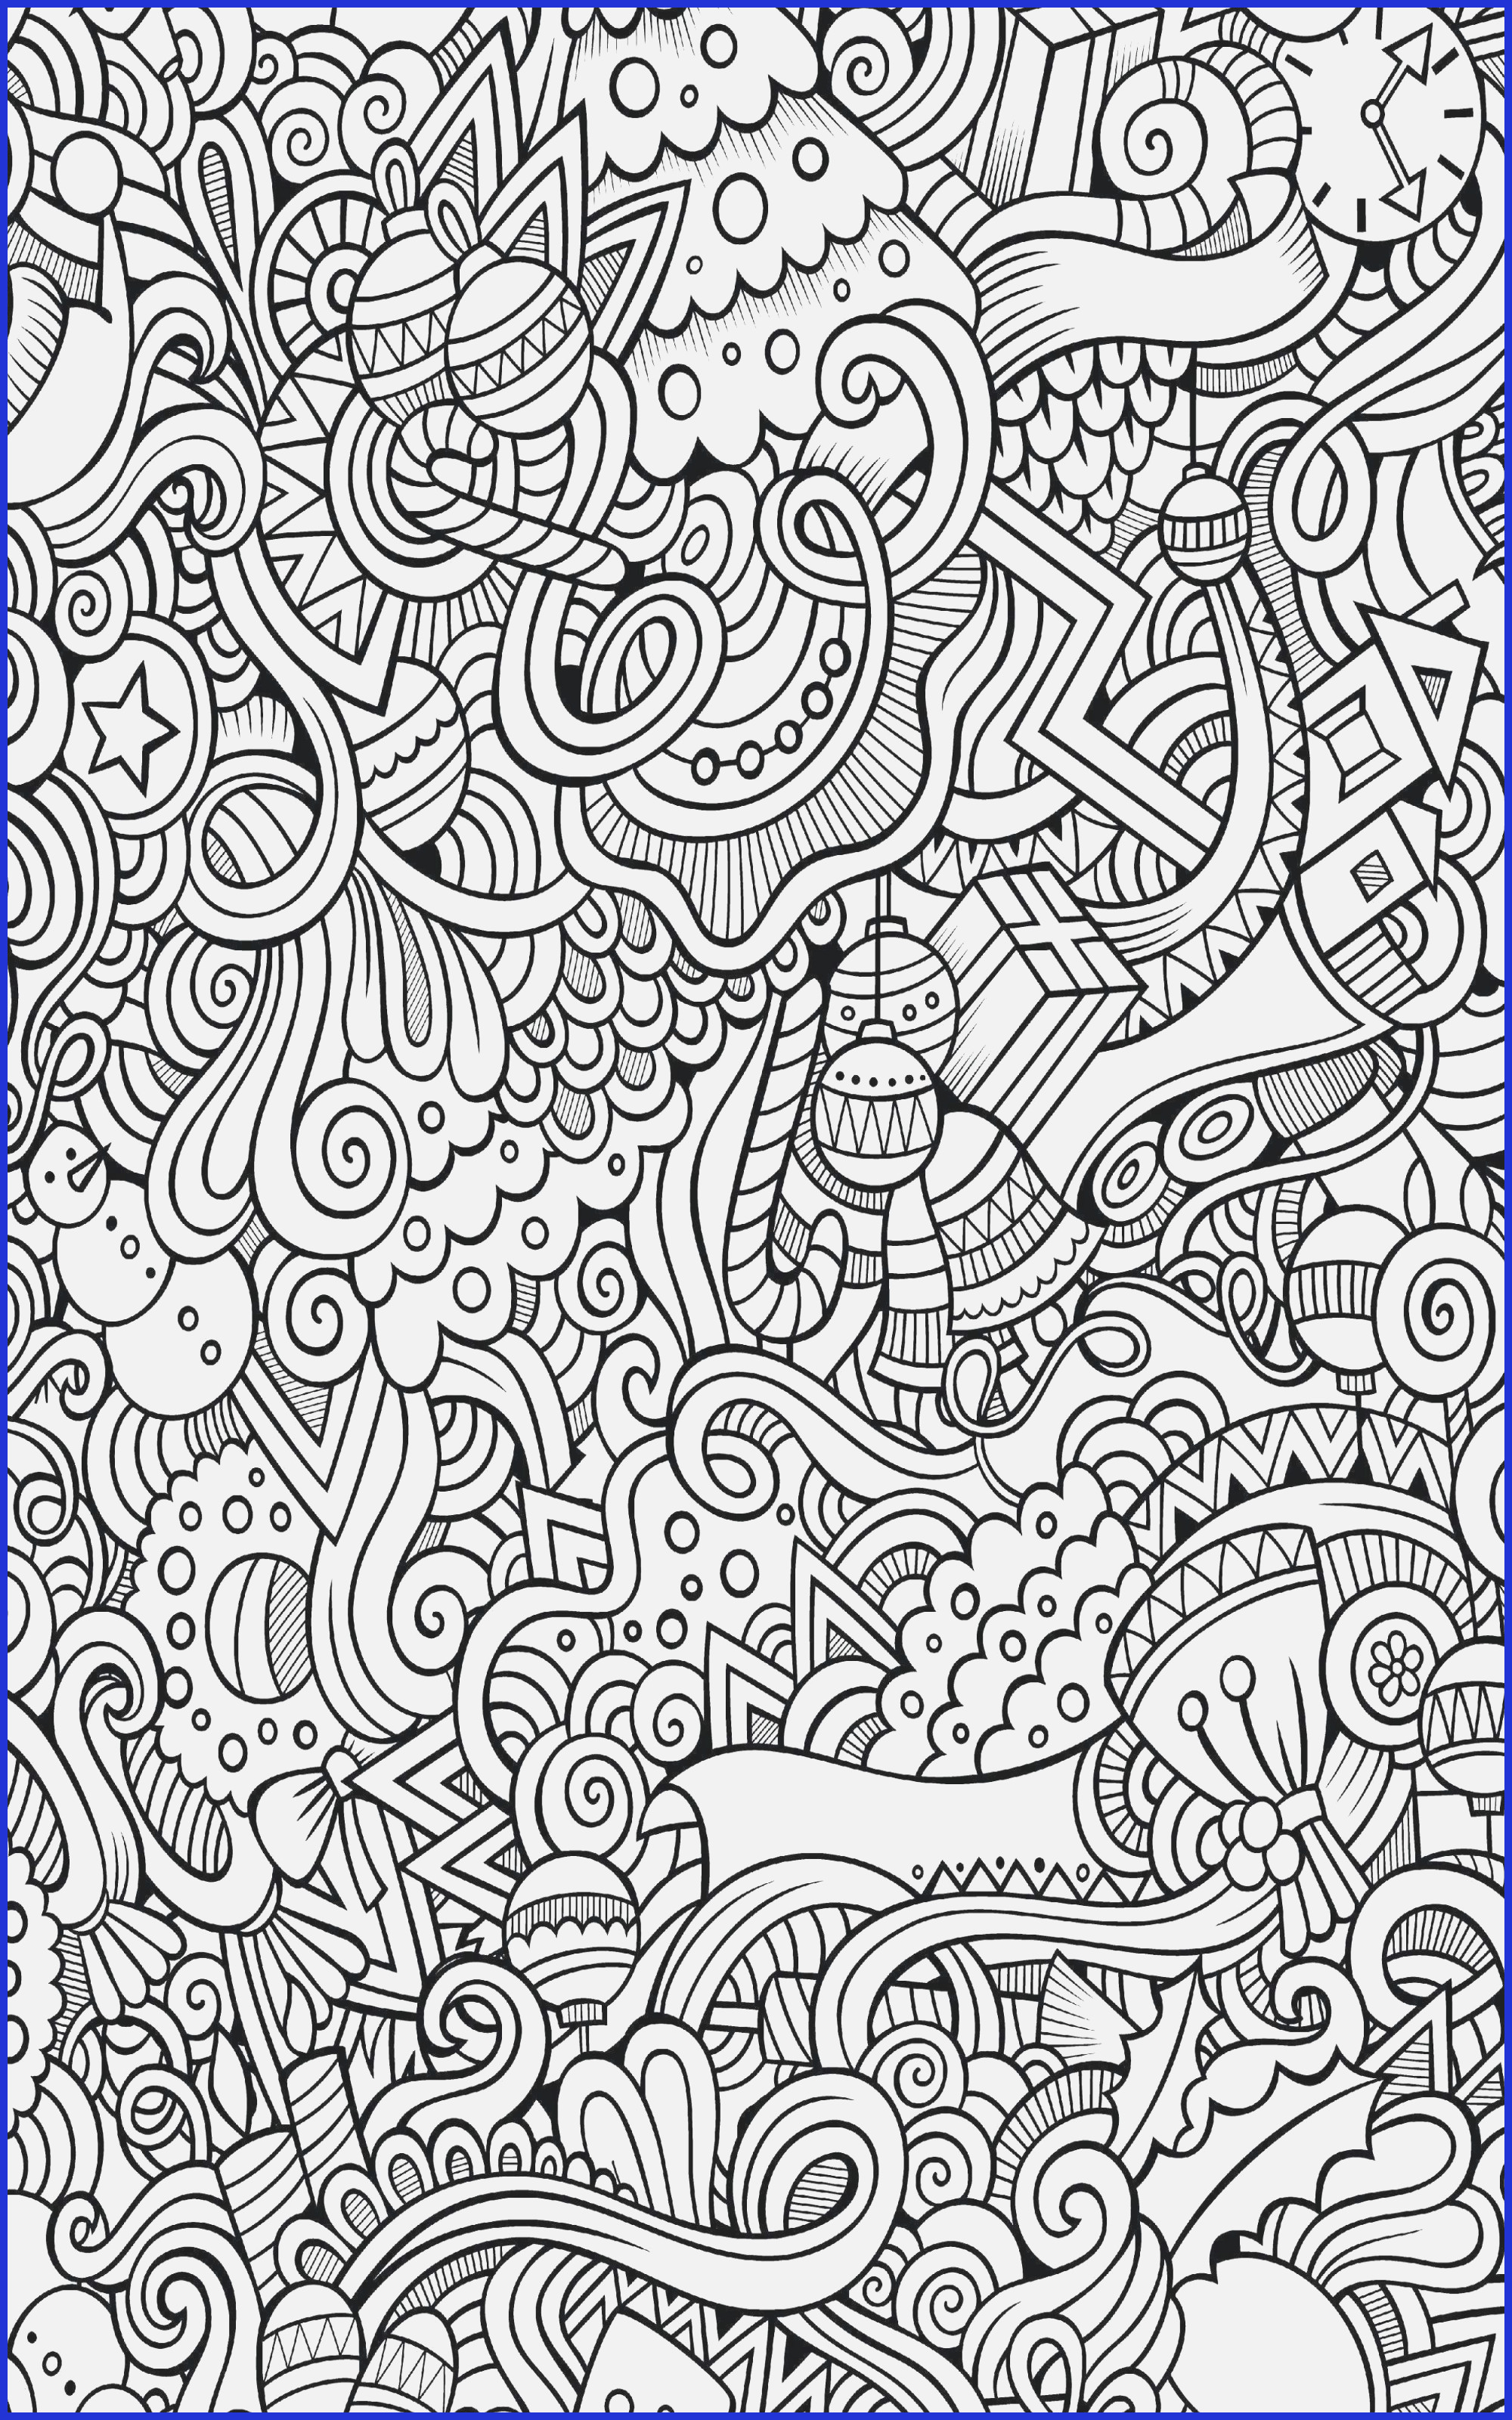 Free Online Christmas Coloring Pages For Adults With Adult Books Line